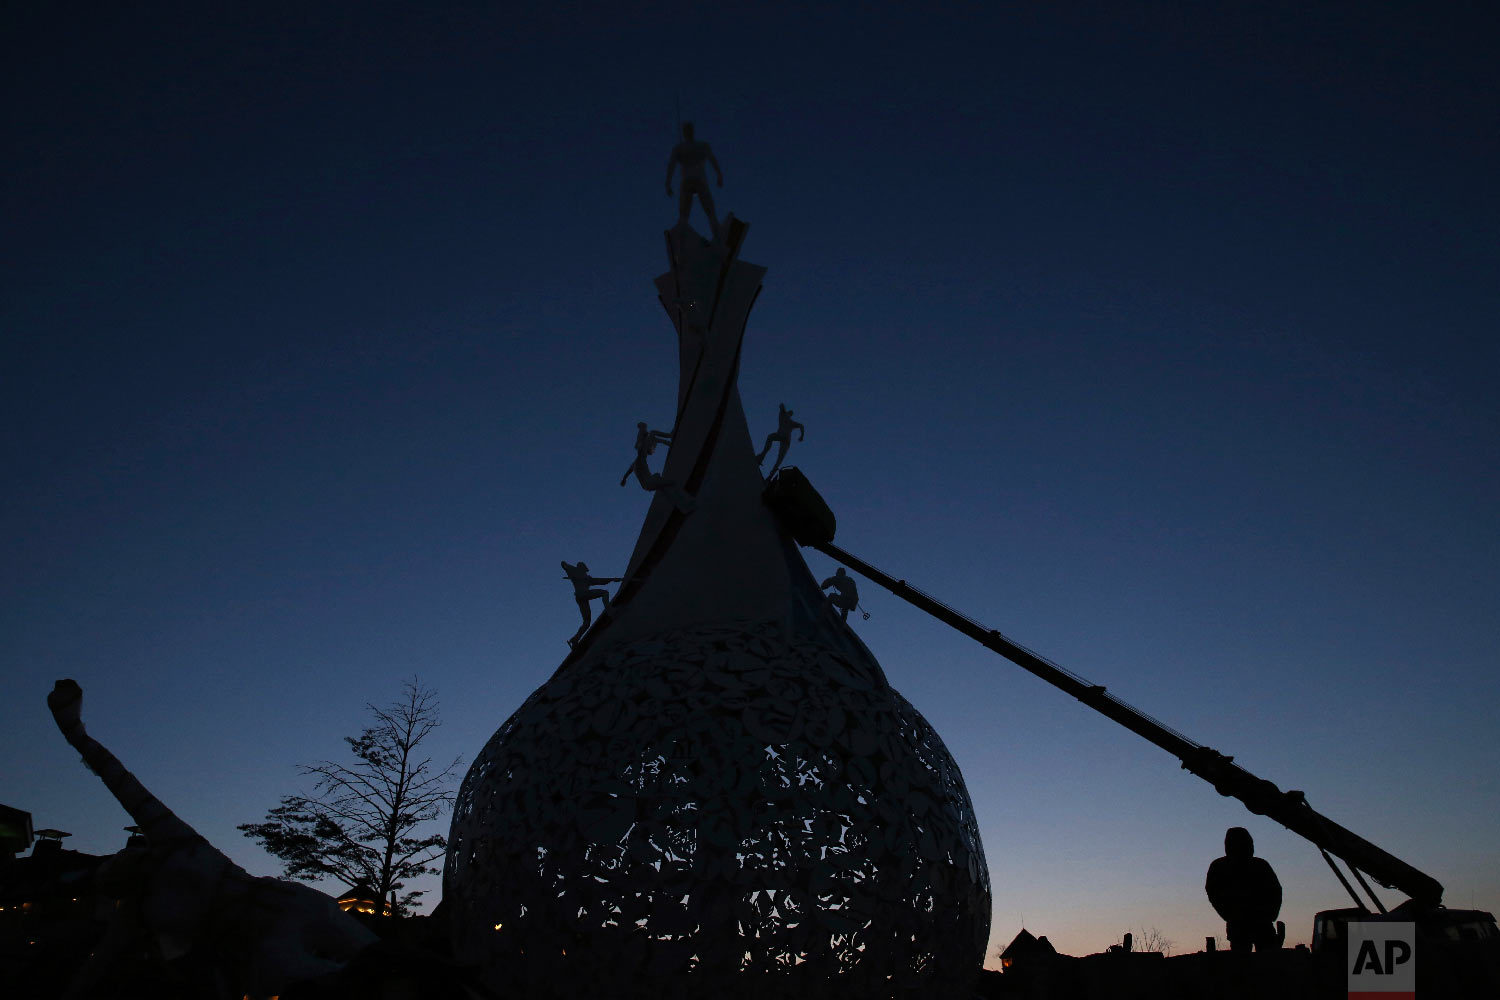 Workers continue building the Pyeongchang 2018 Symbolic Monument ahead of the 2018 Winter Olympics in Pyeongchang, South Korea, Tuesday, Feb. 6, 2018. (AP Photo/Aaron Favila)